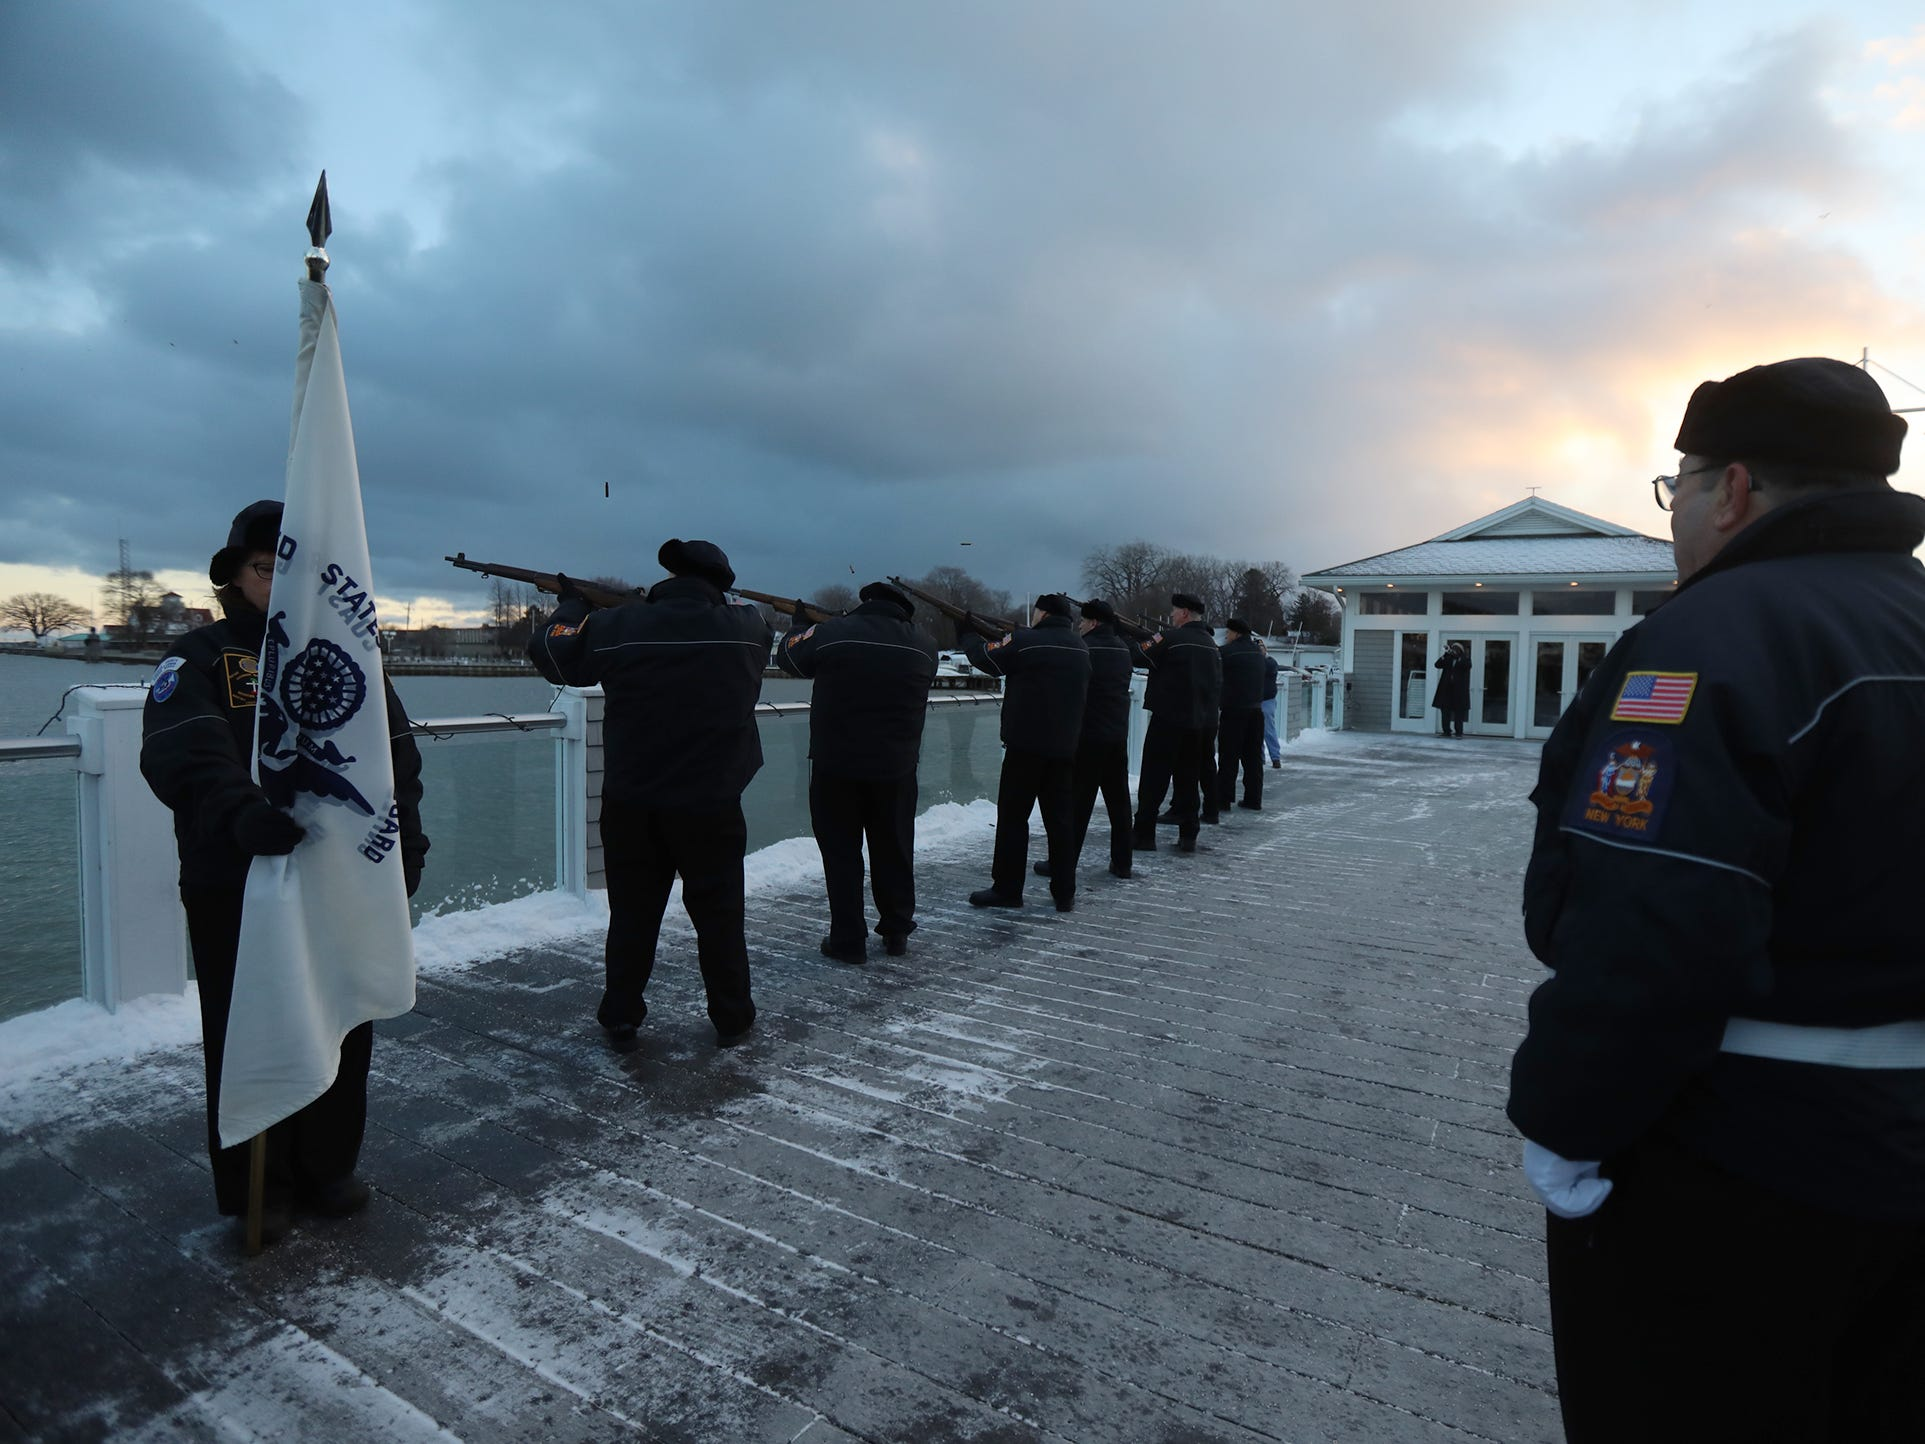 The Monroe County American Legion members gave a  21 gun salute followed by the playing of taps.